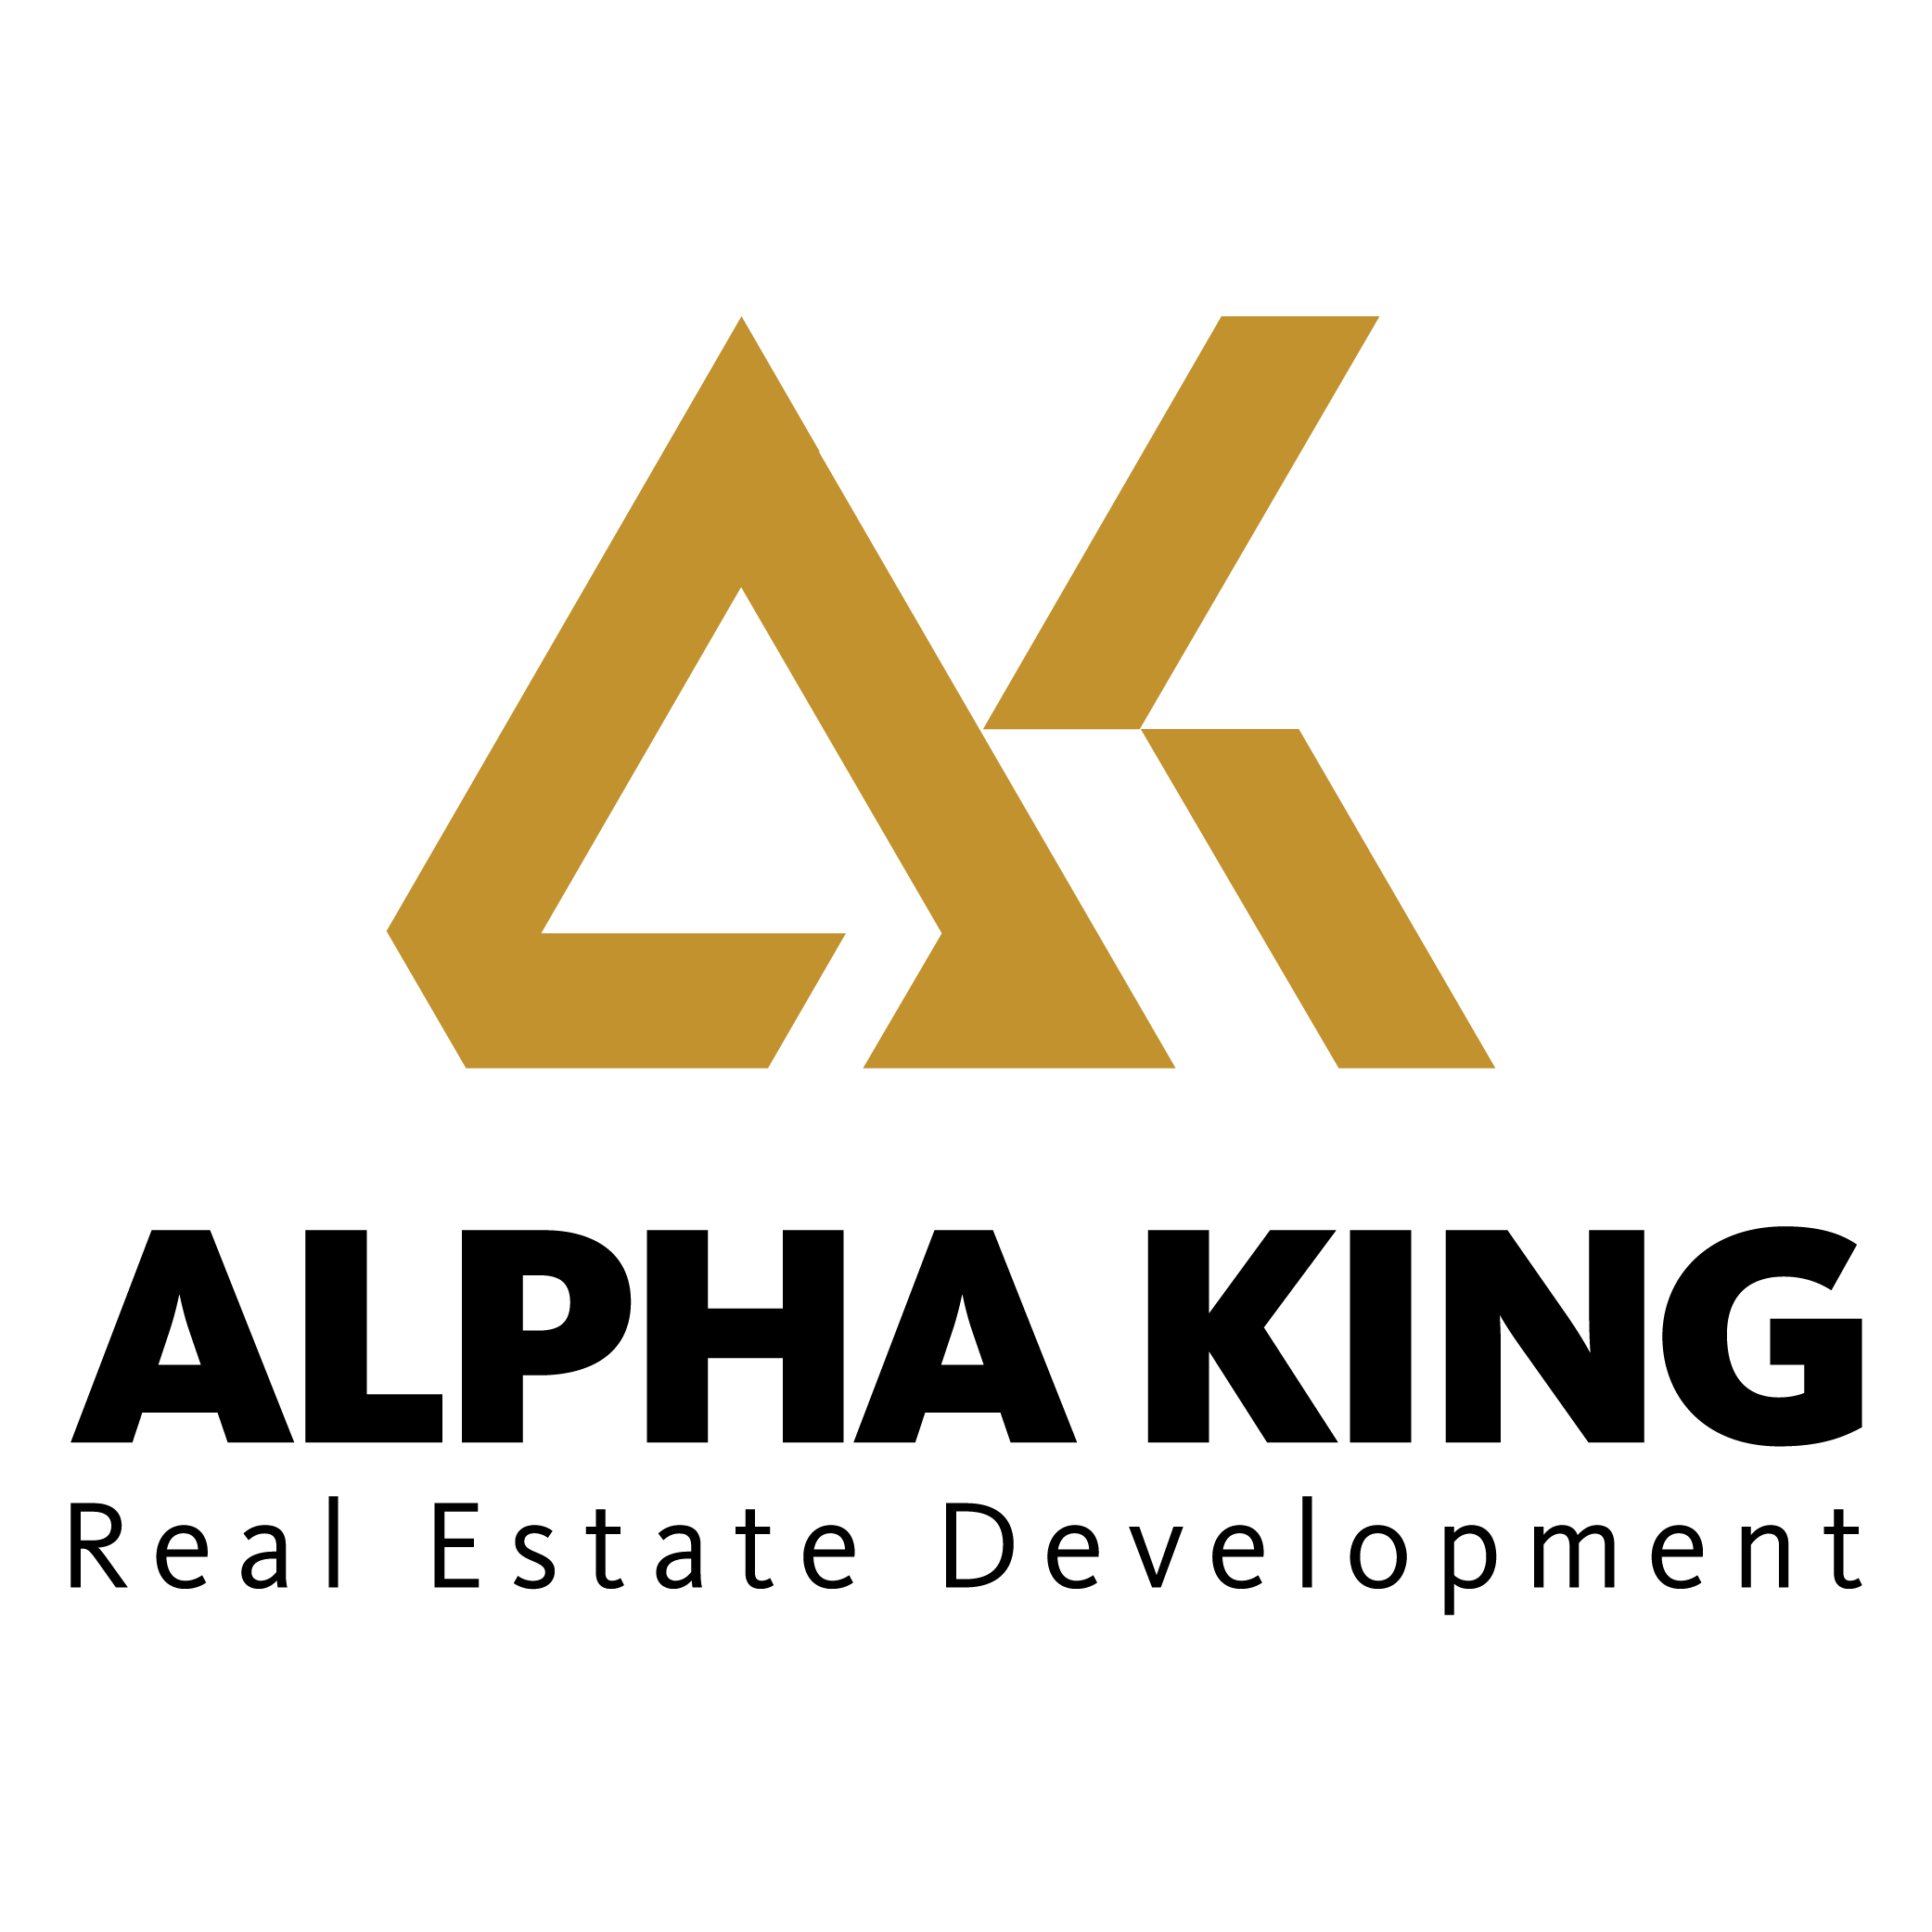 Alpha King—international real estate developer officially launched in Vietnam